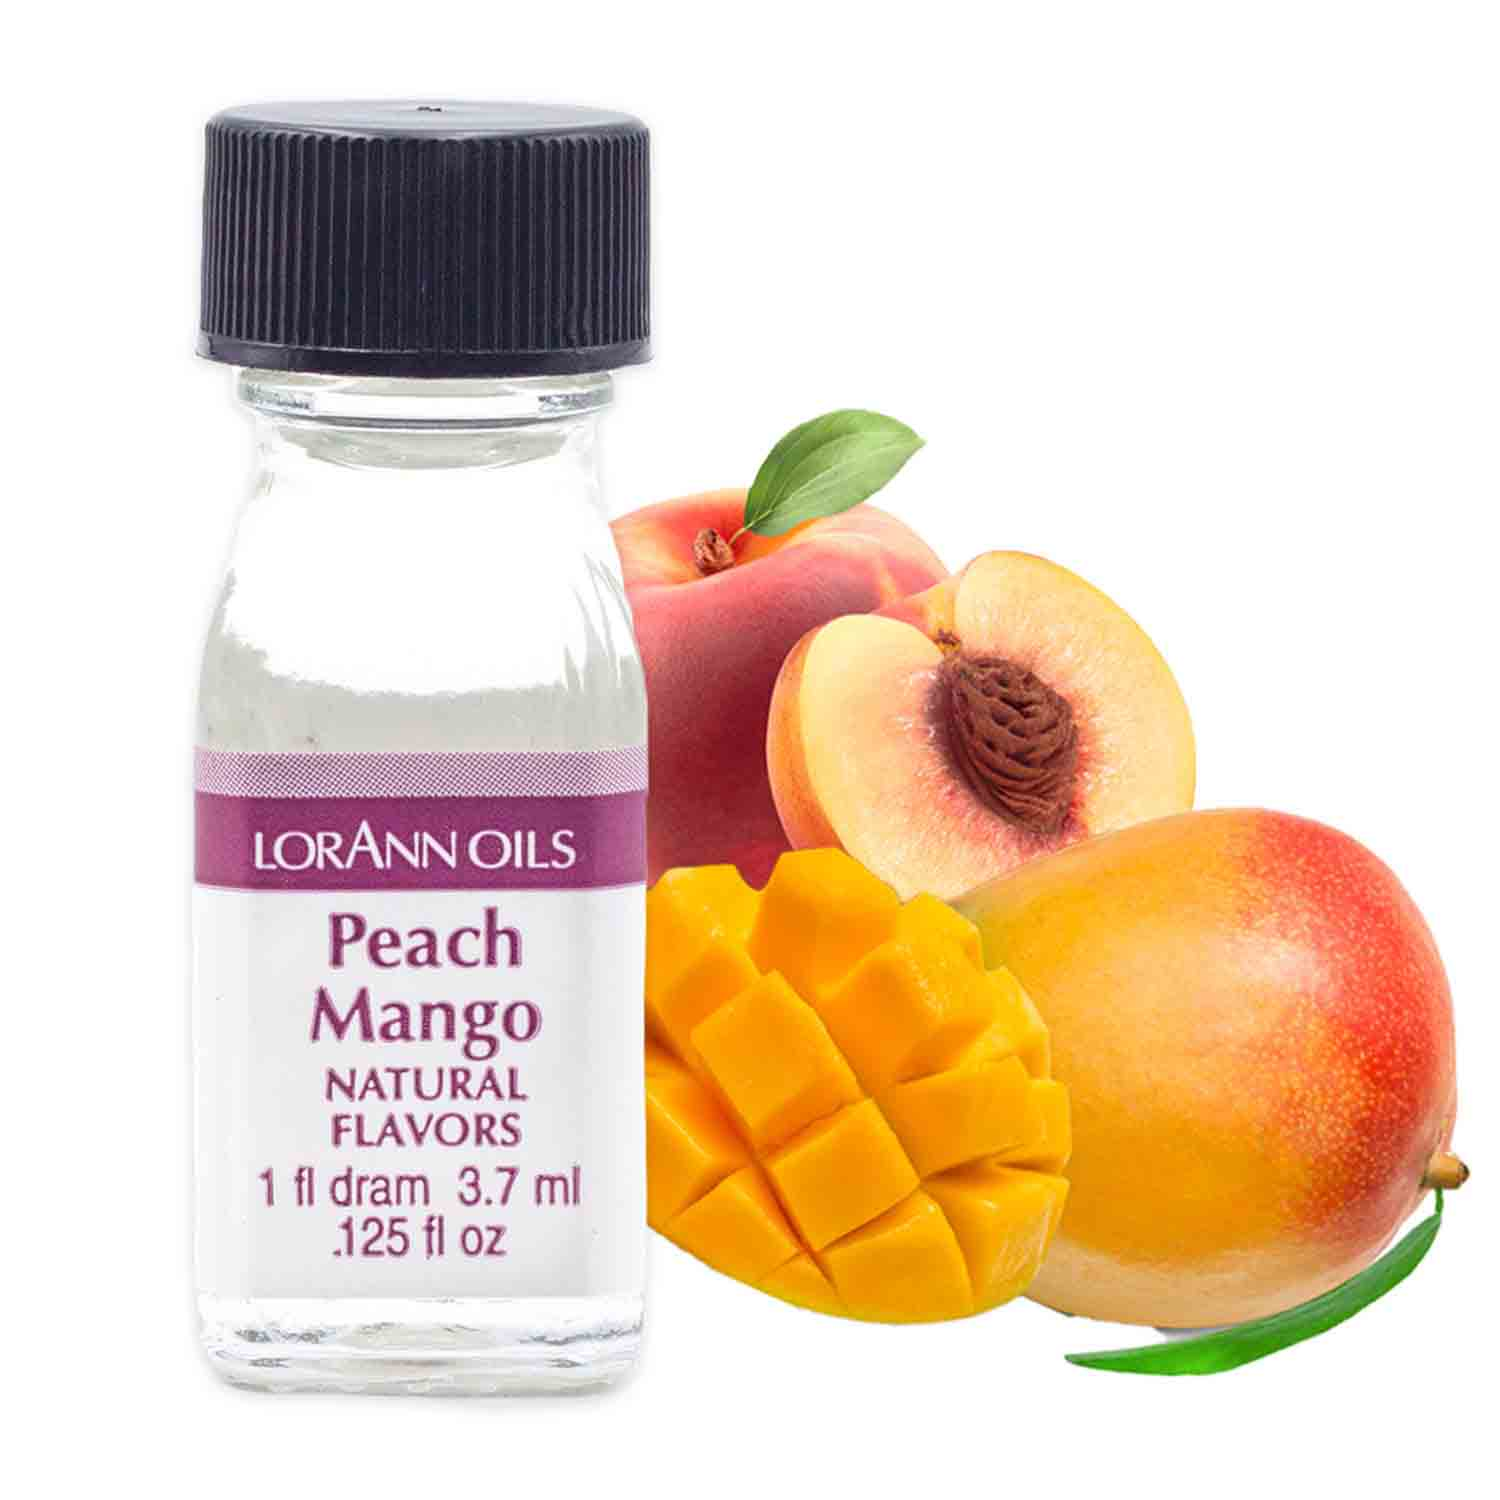 Peach Mango LorAnn Super-Strength Flavor